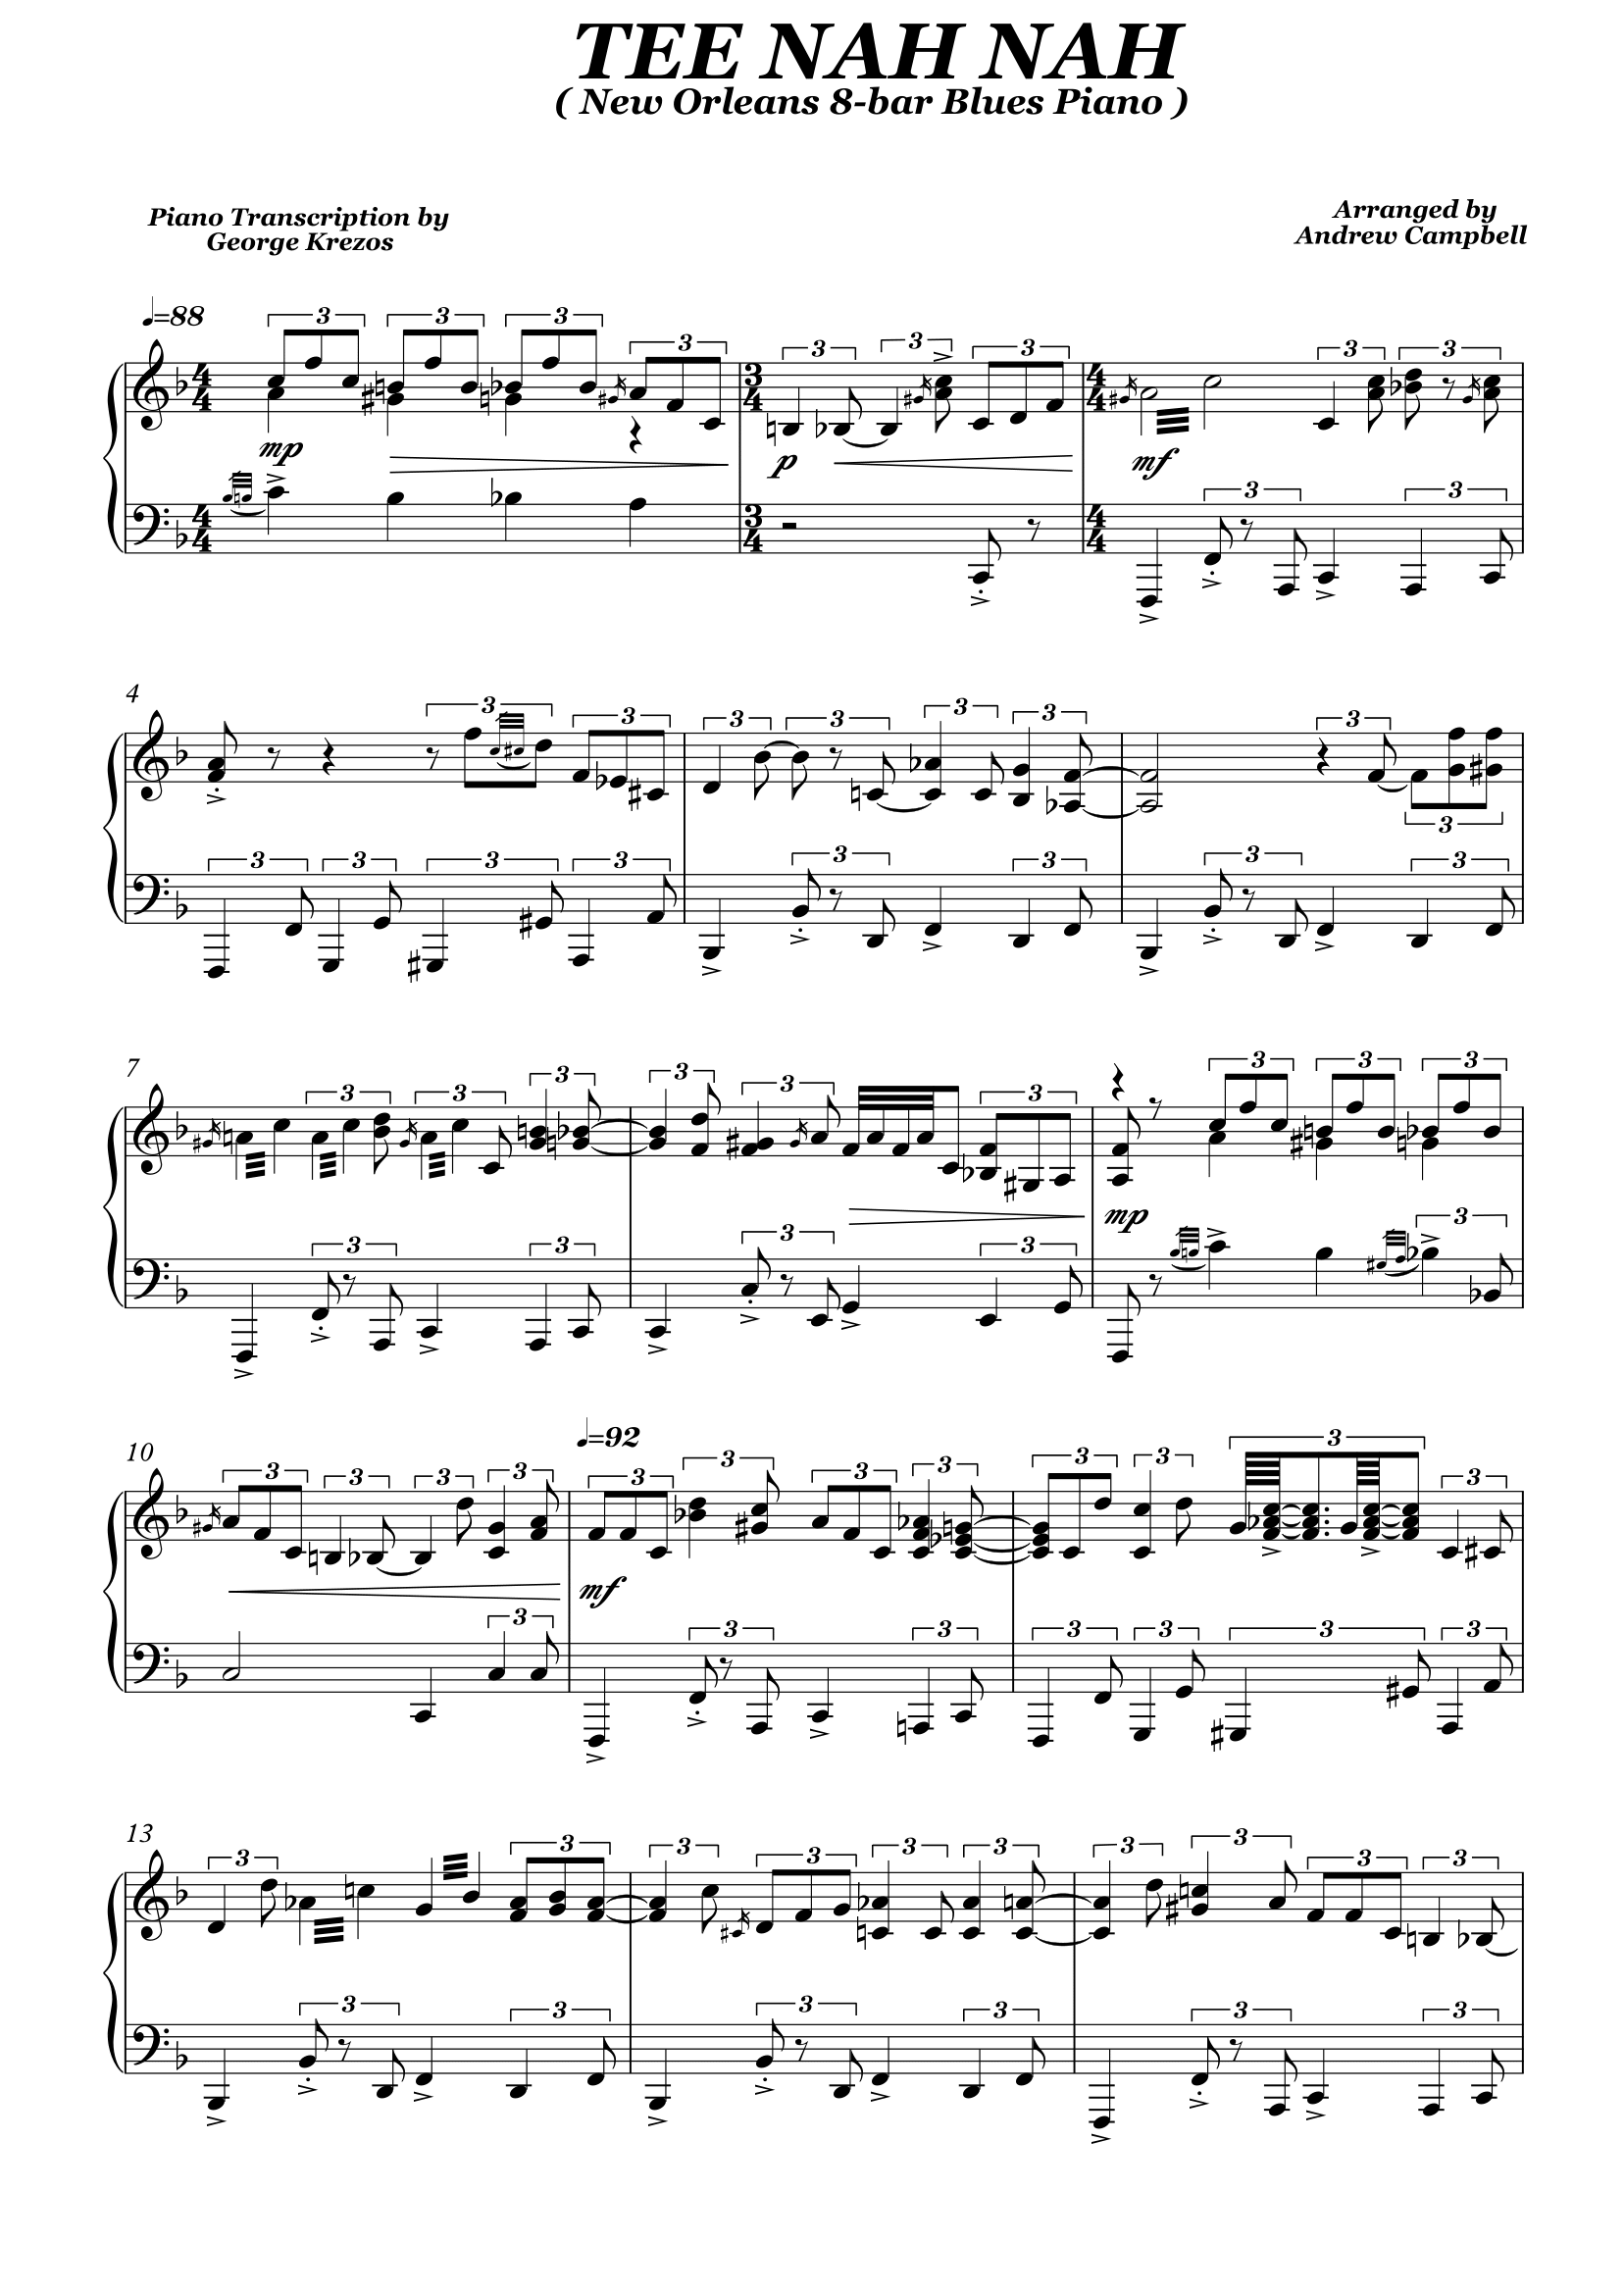 Tee Nah Nah - New Orleans 8-Bar Blues Piano.png